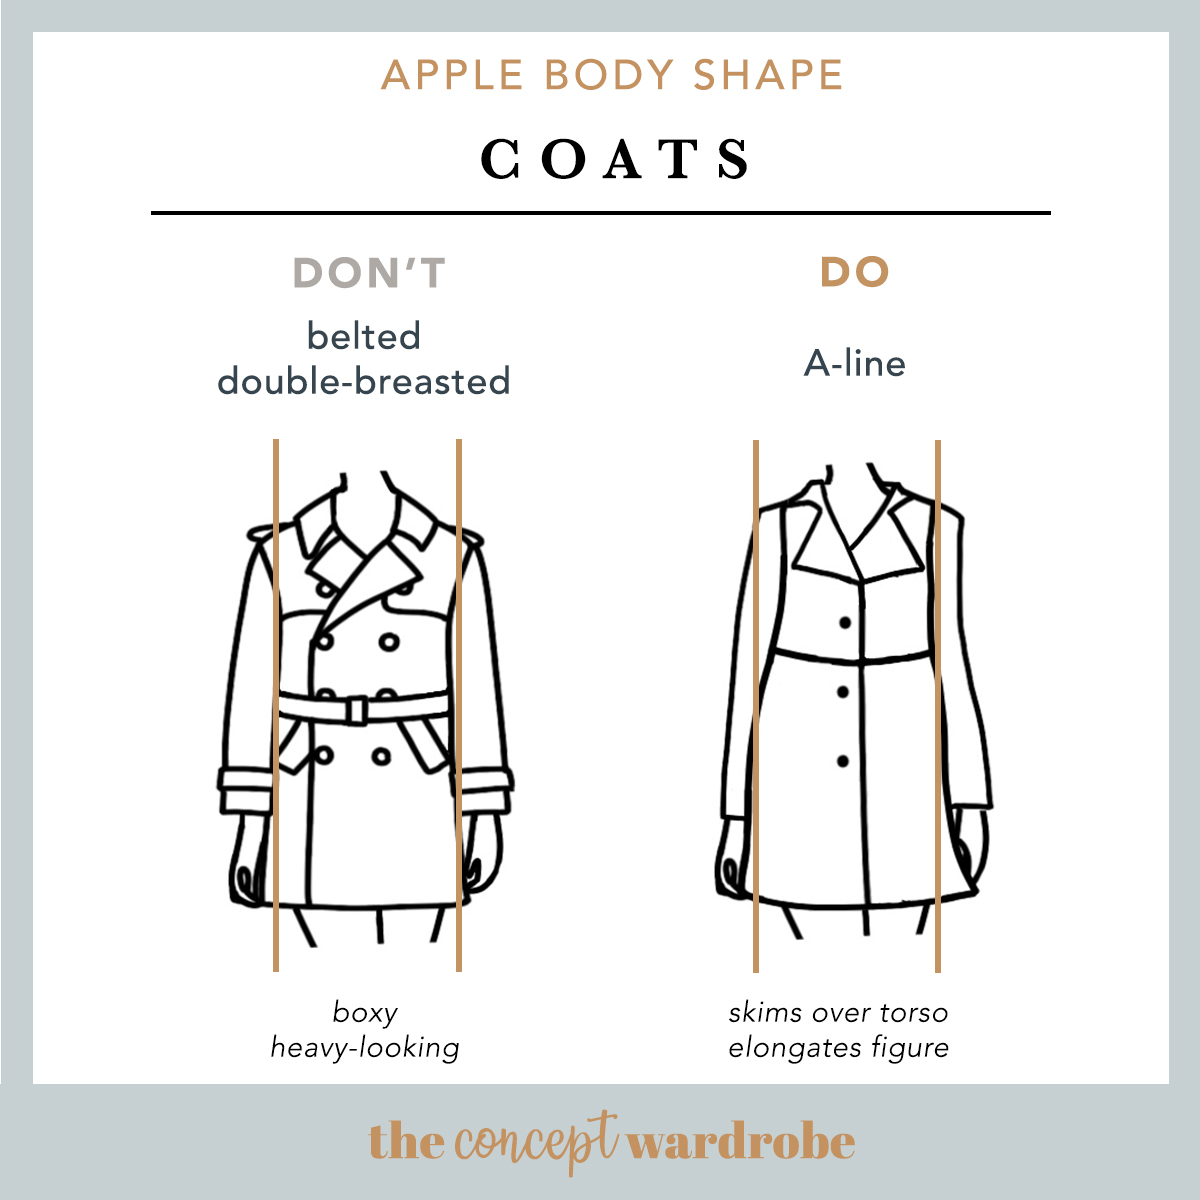 Apple Body Shape Coats Do's and Don'ts - the concept wardrobe